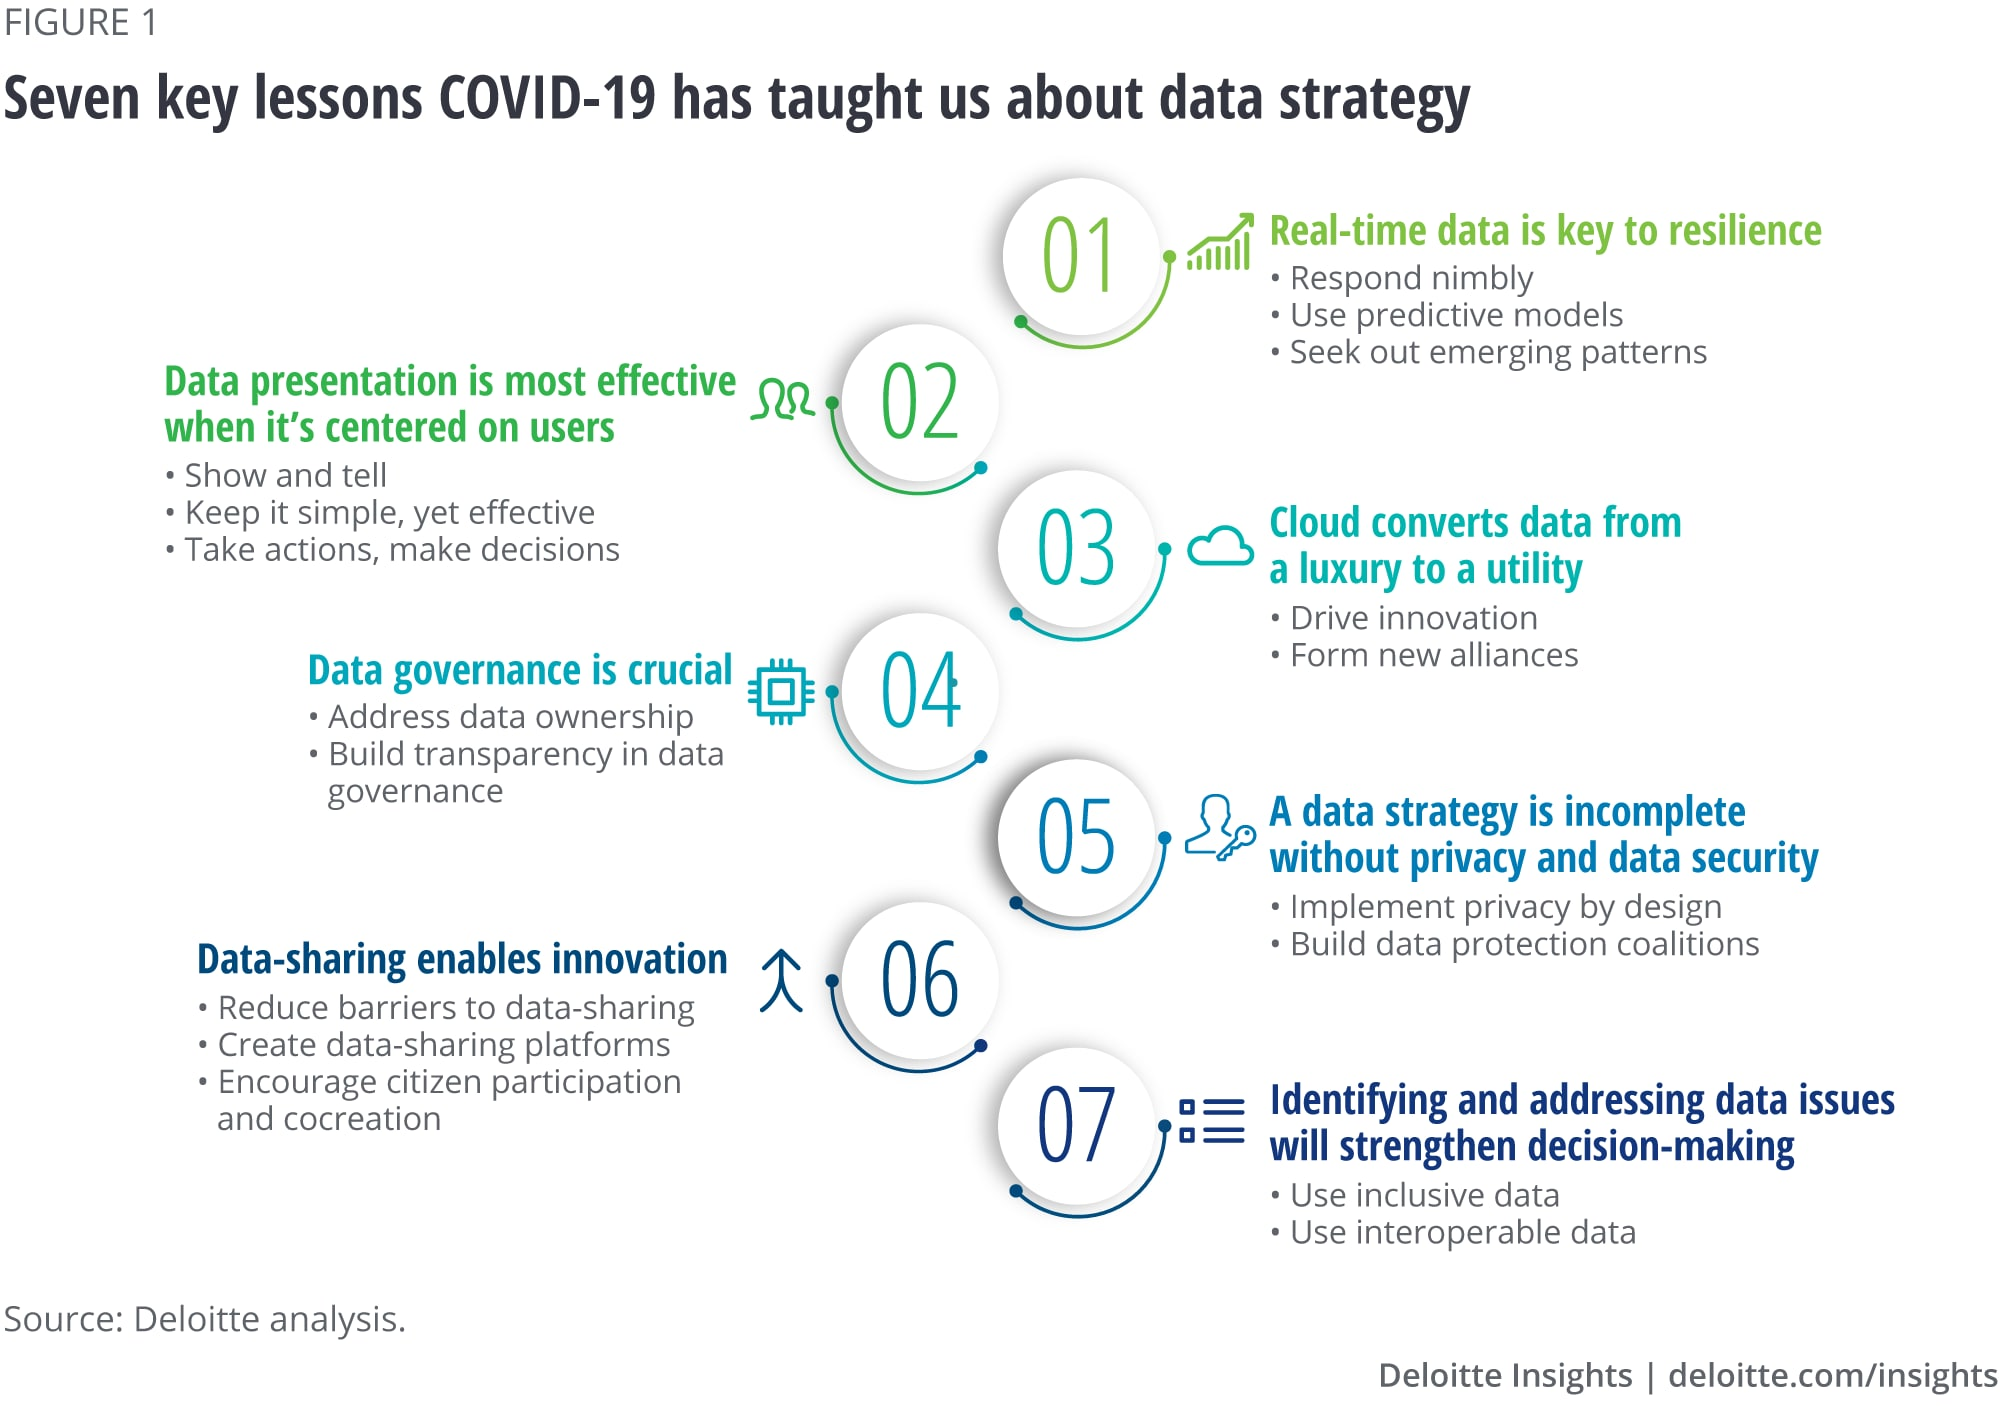 Seven key lessons COVID-19 has taught us about data strategy